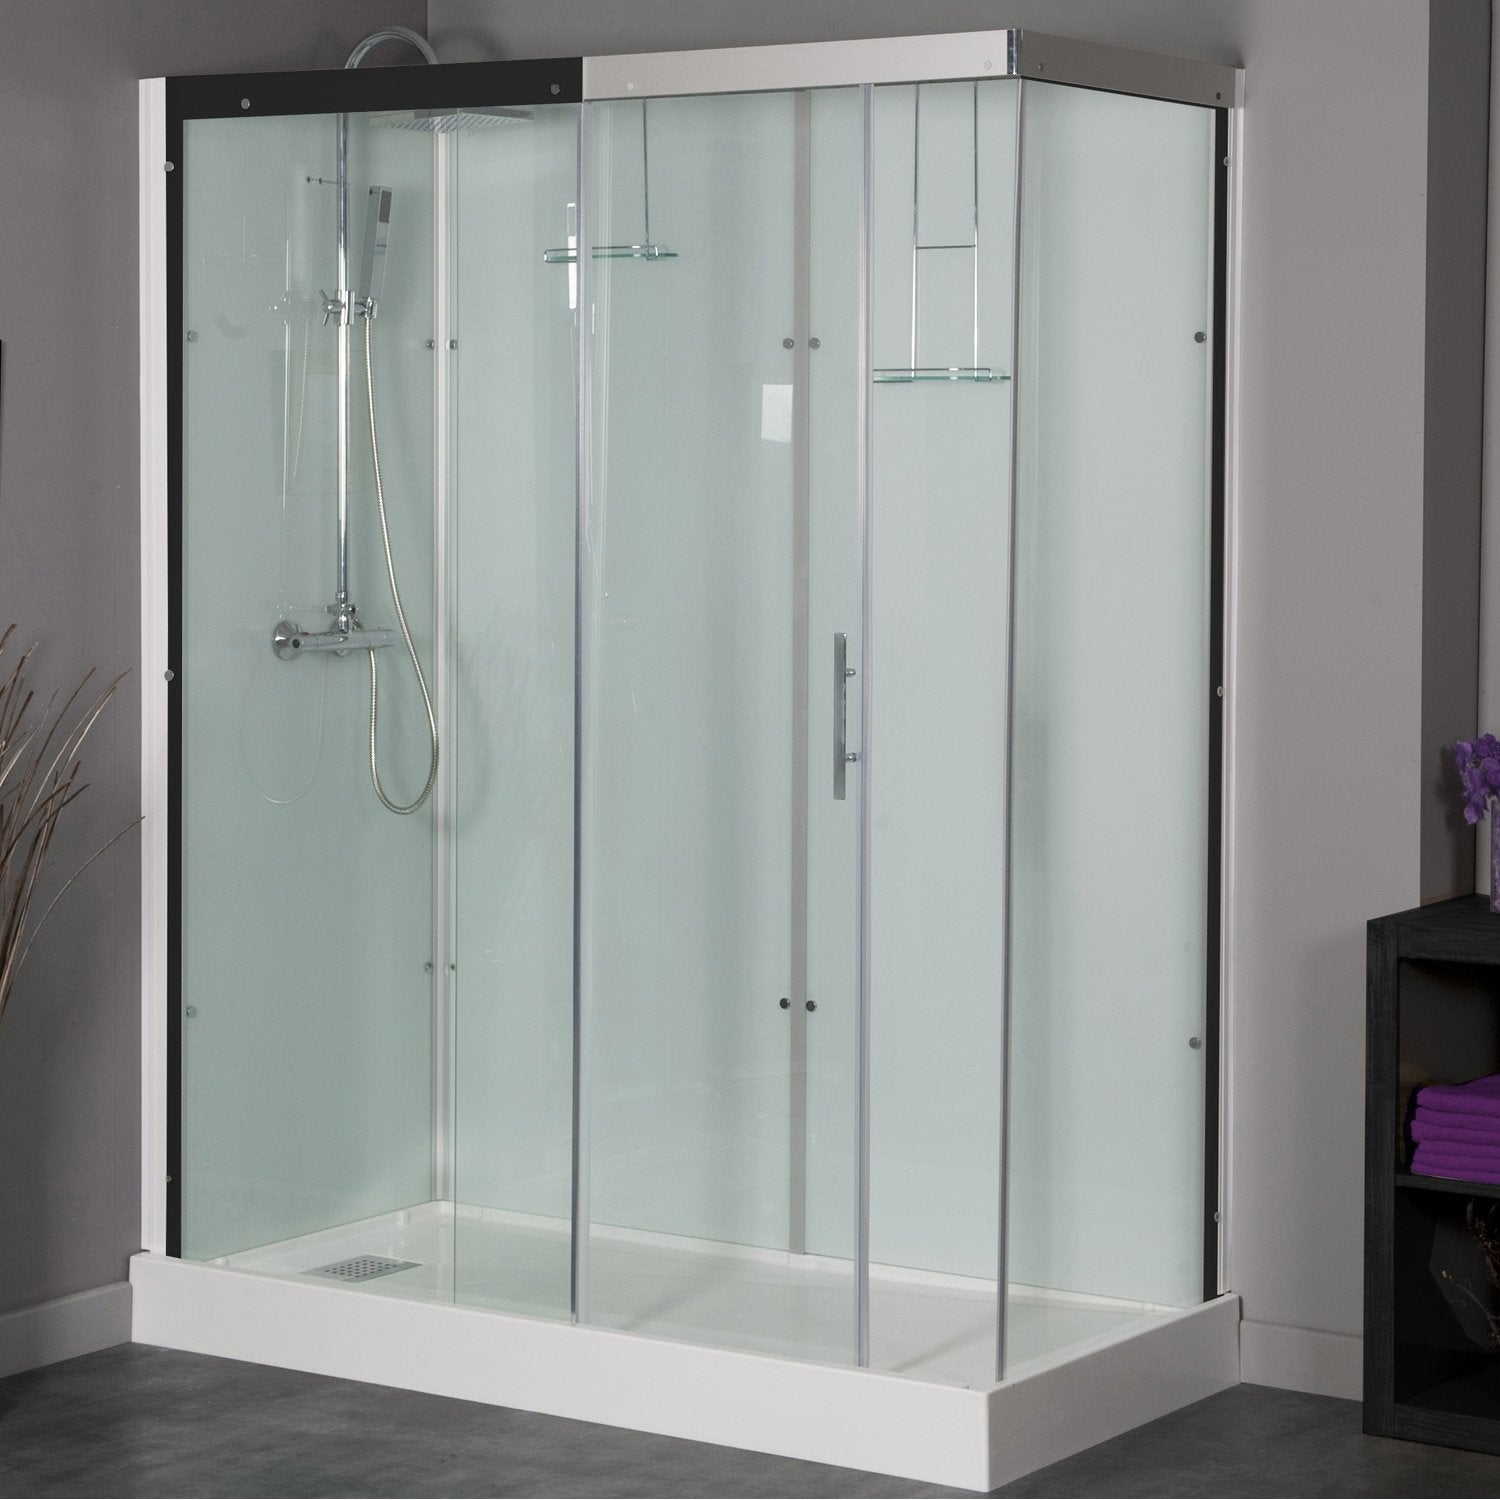 Cabine de douche rectangulaire 160x80 cm thalaglass 2 thermo leroy merlin - Destockage cabine de douche ...